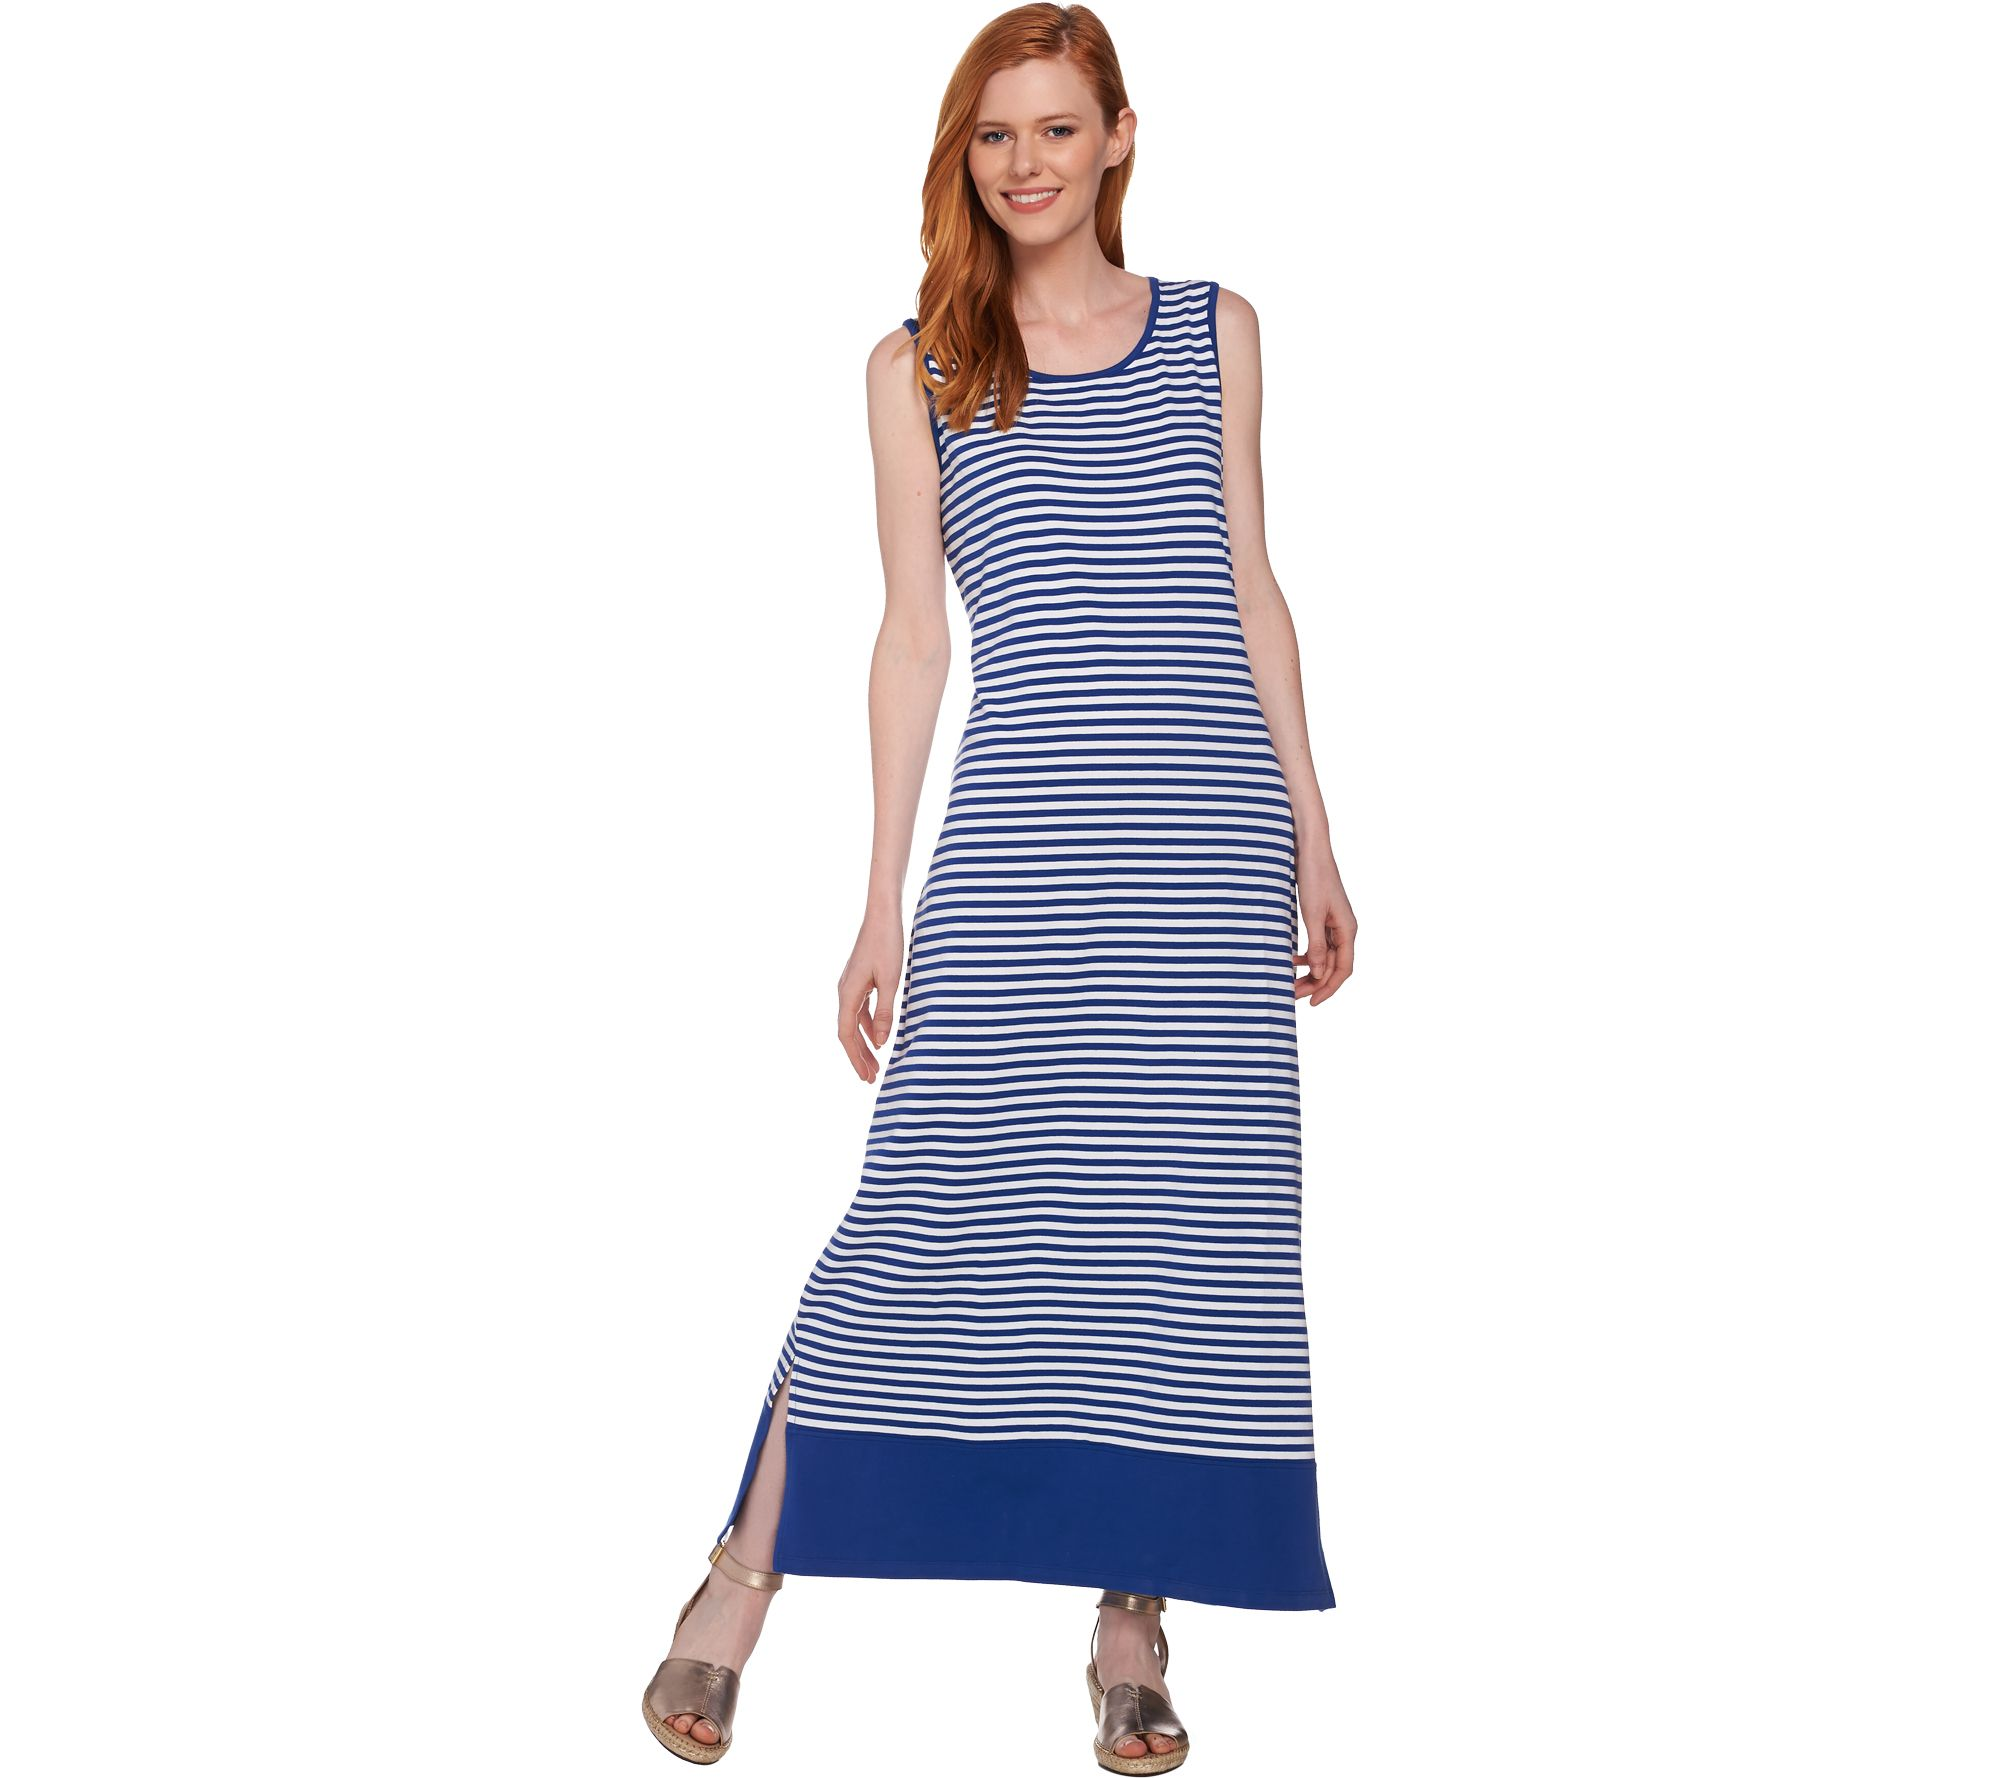 Qvc maxi dress clearance